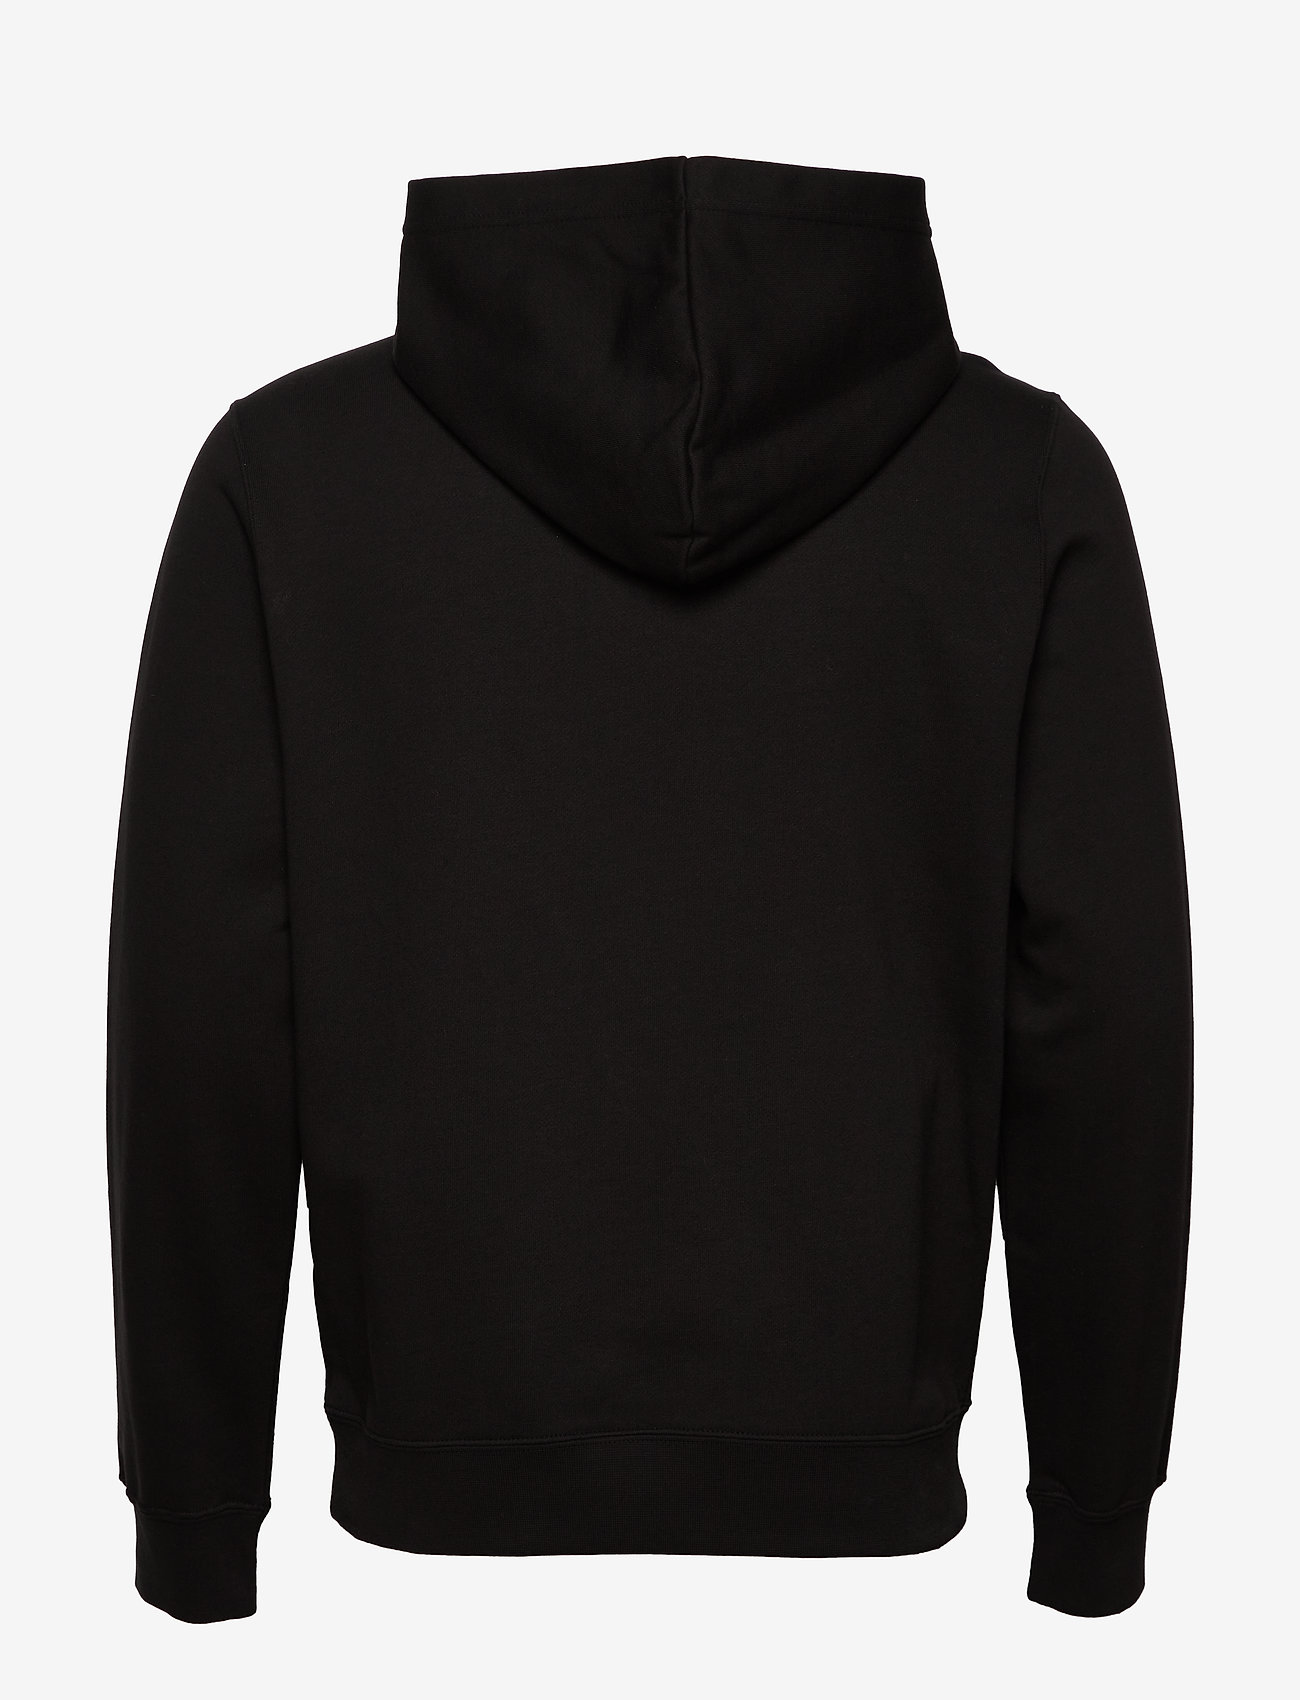 Calvin Klein Jeans - SUBTLE INSTITUTIONAL LOGO HOODIE - basic sweatshirts - ck black - 1